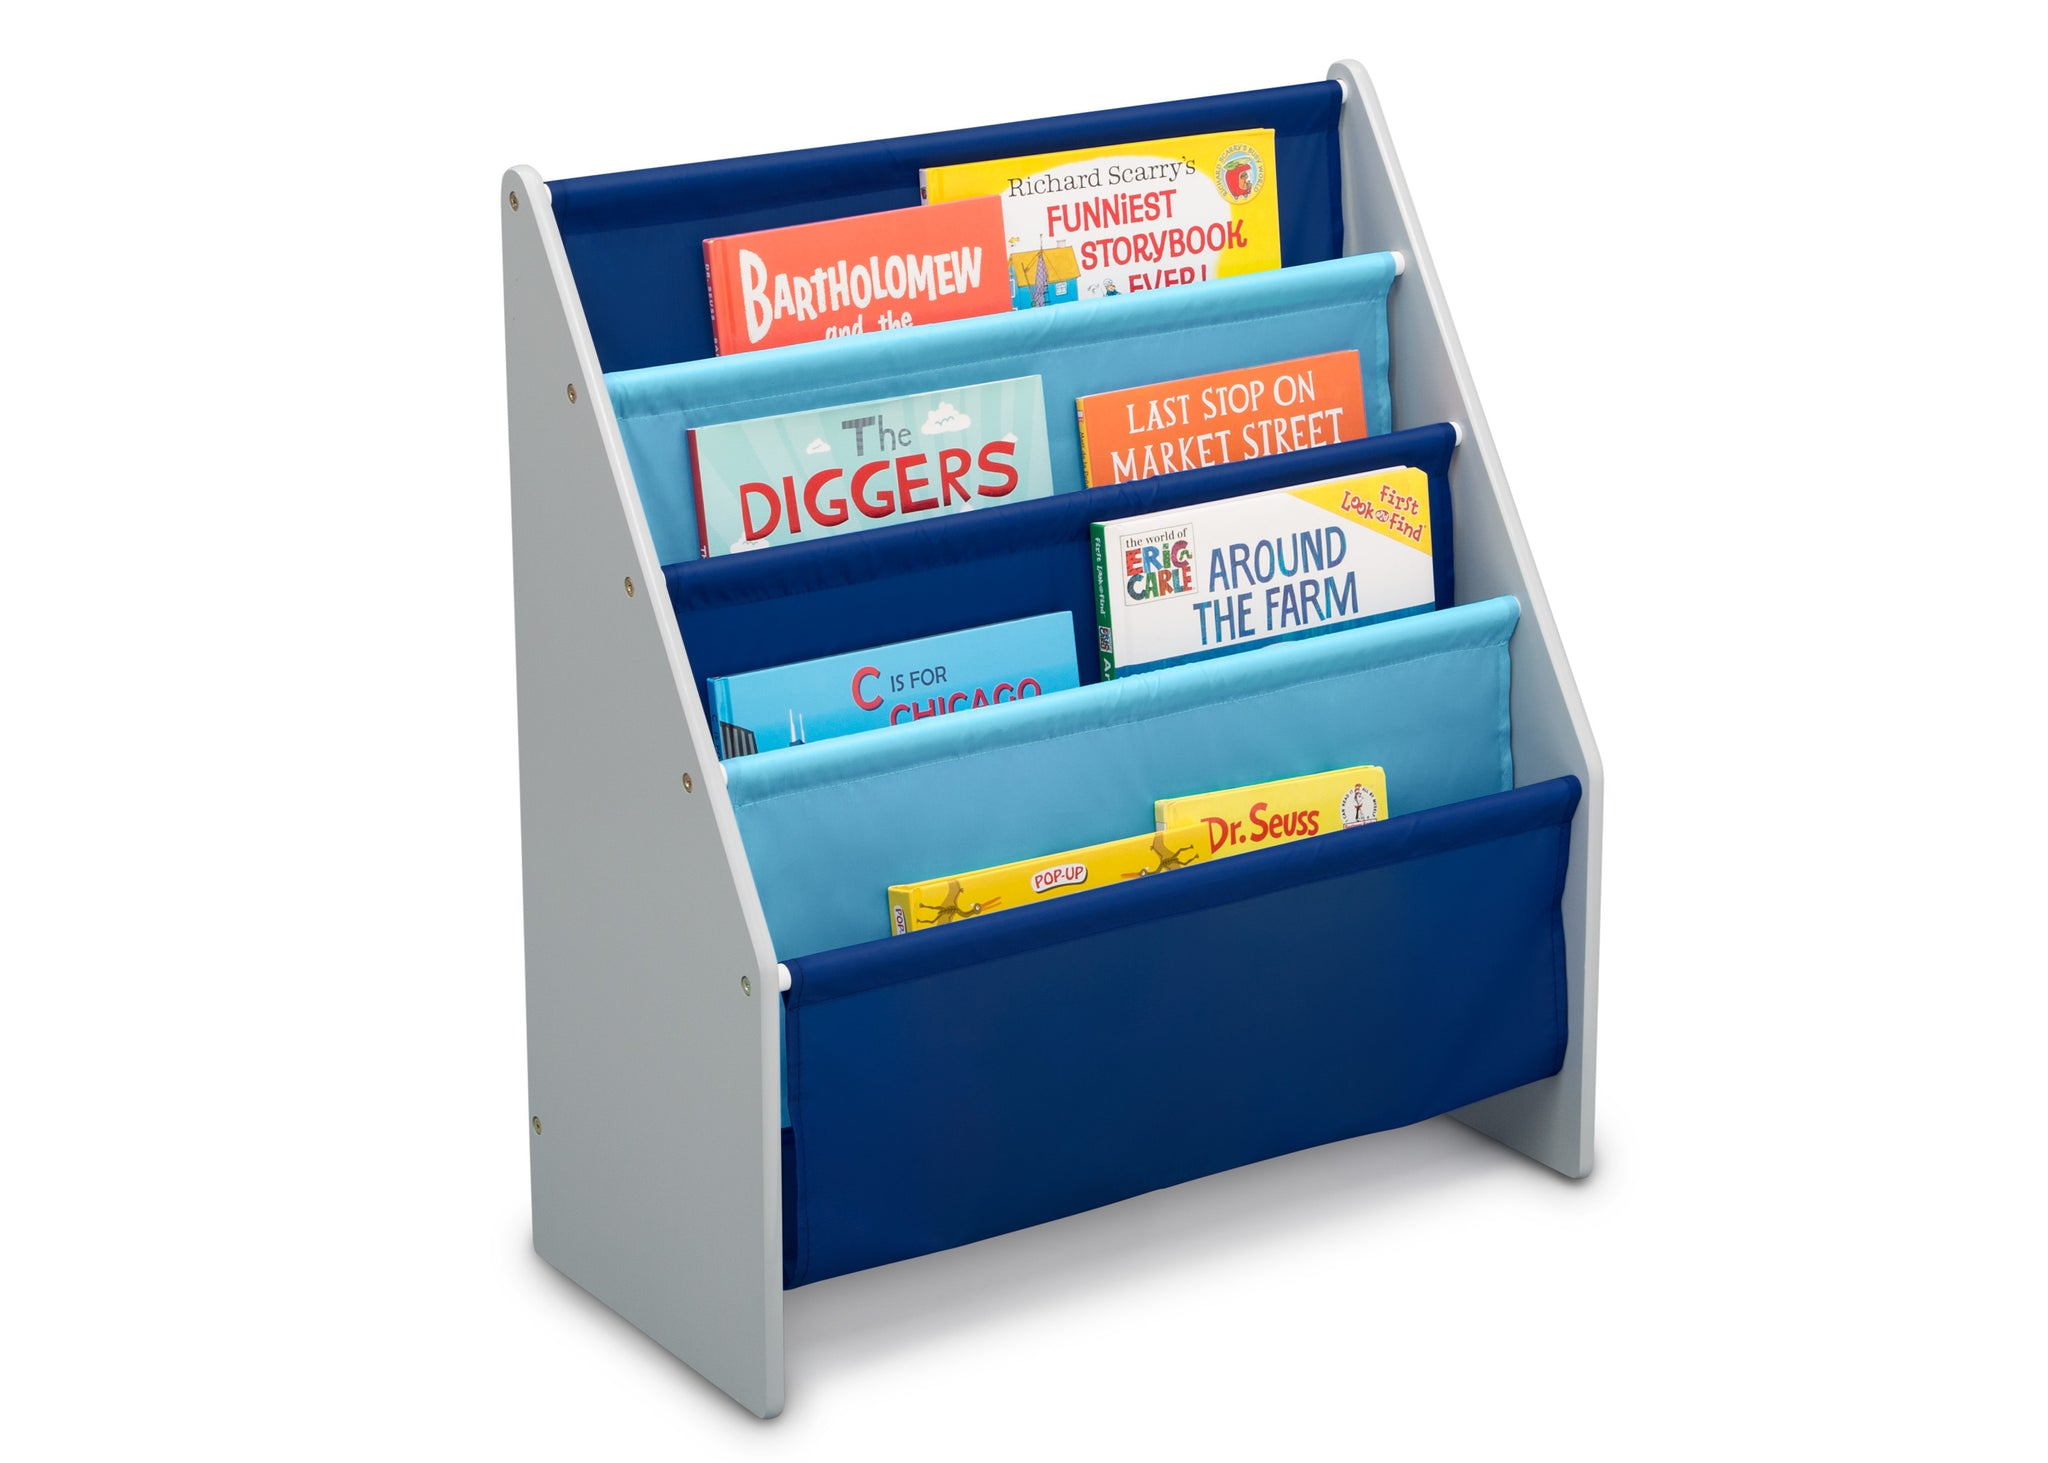 Delta Children Grey/Blue (026) Sling Book Rack Bookshelf for Kids, Right Silo View with Props Grey (026)